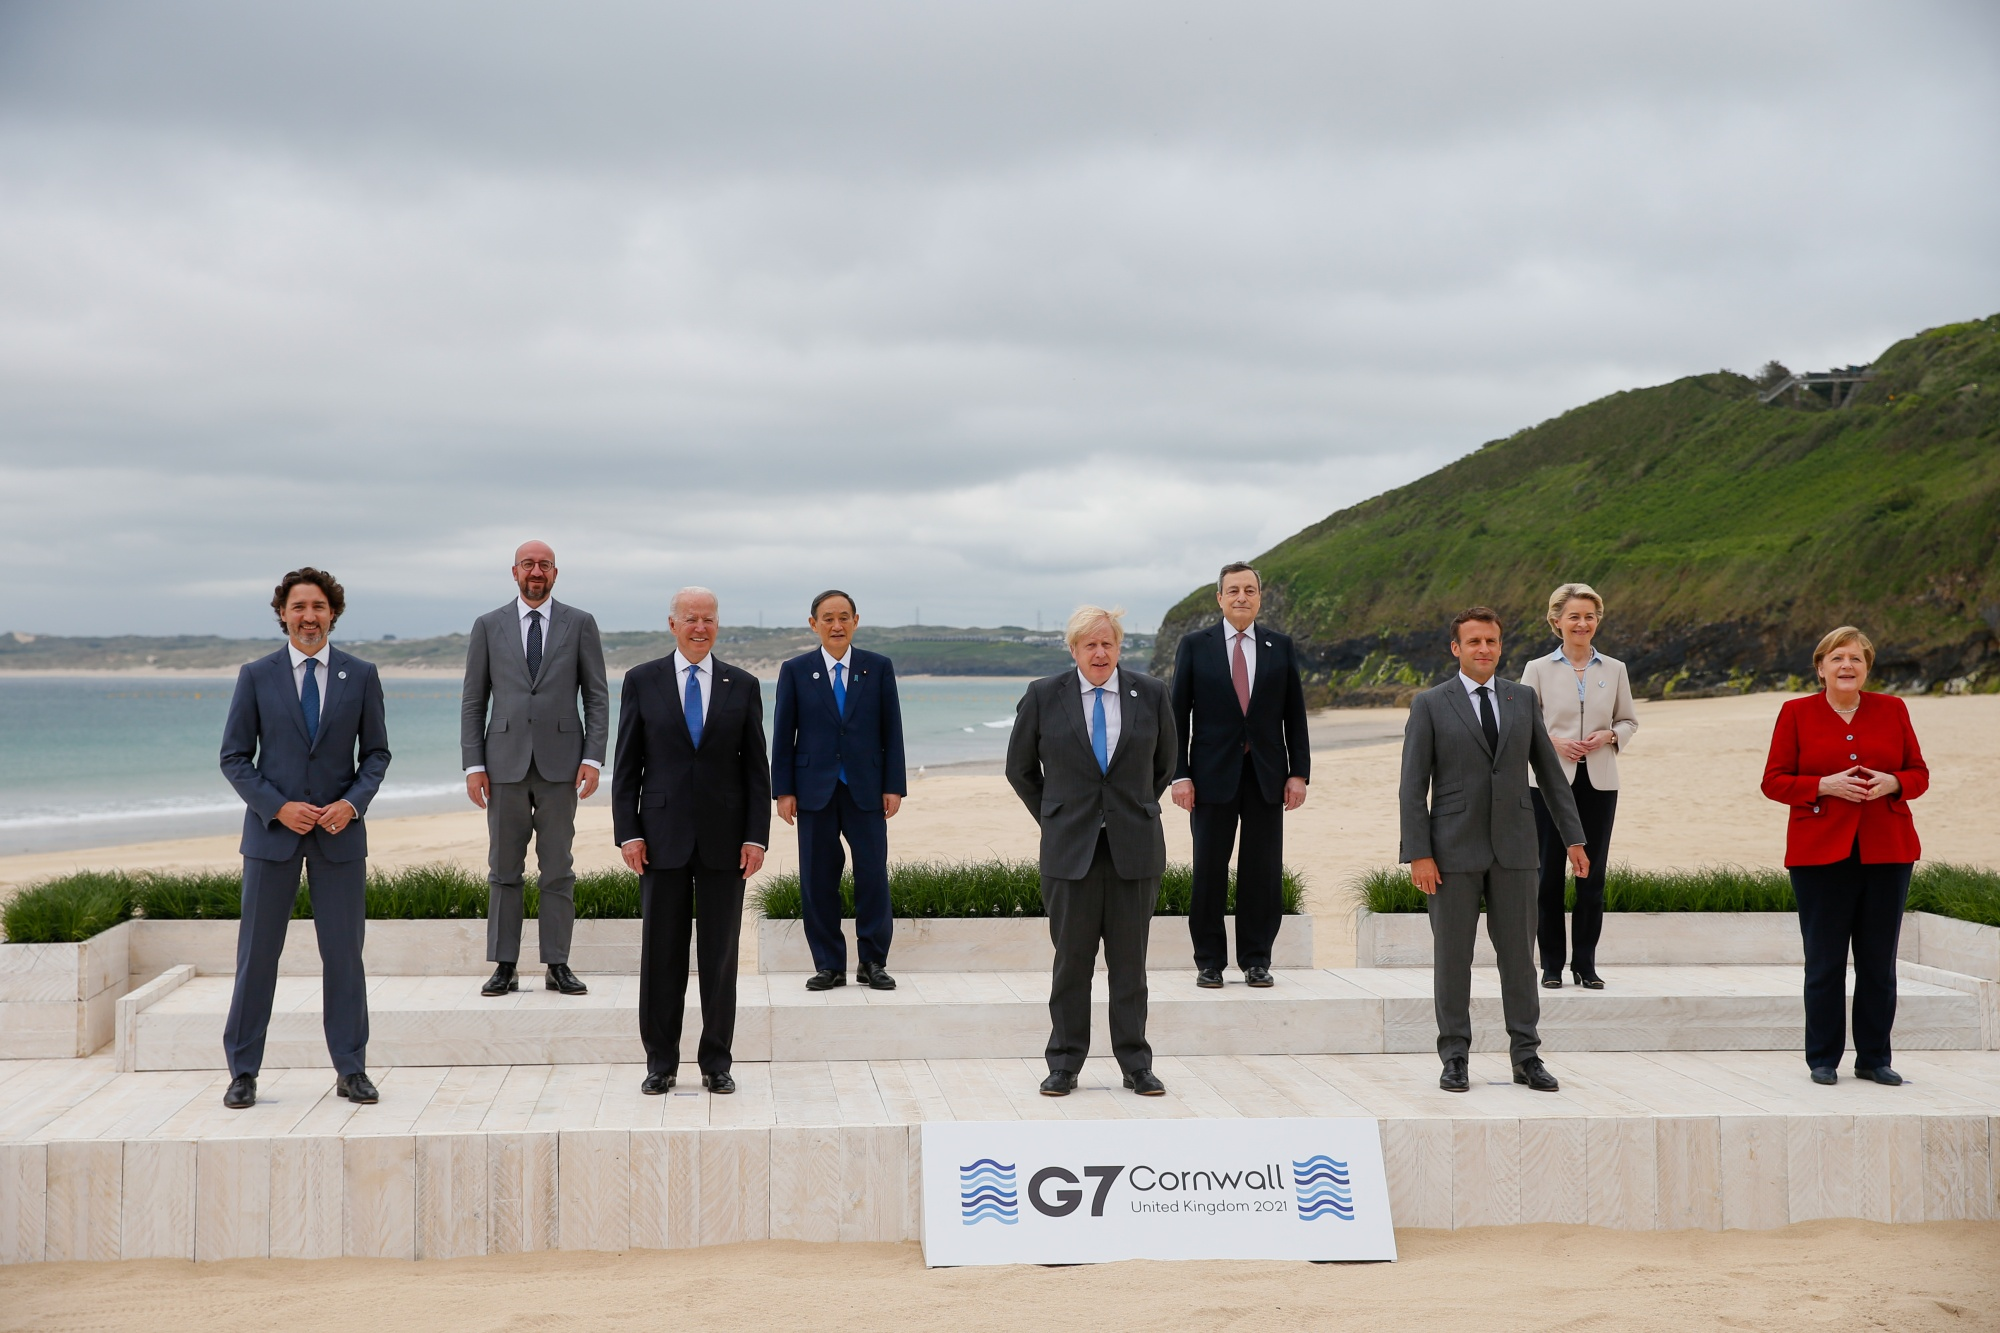 The first day of the G7 Summit of Heads of State or Government